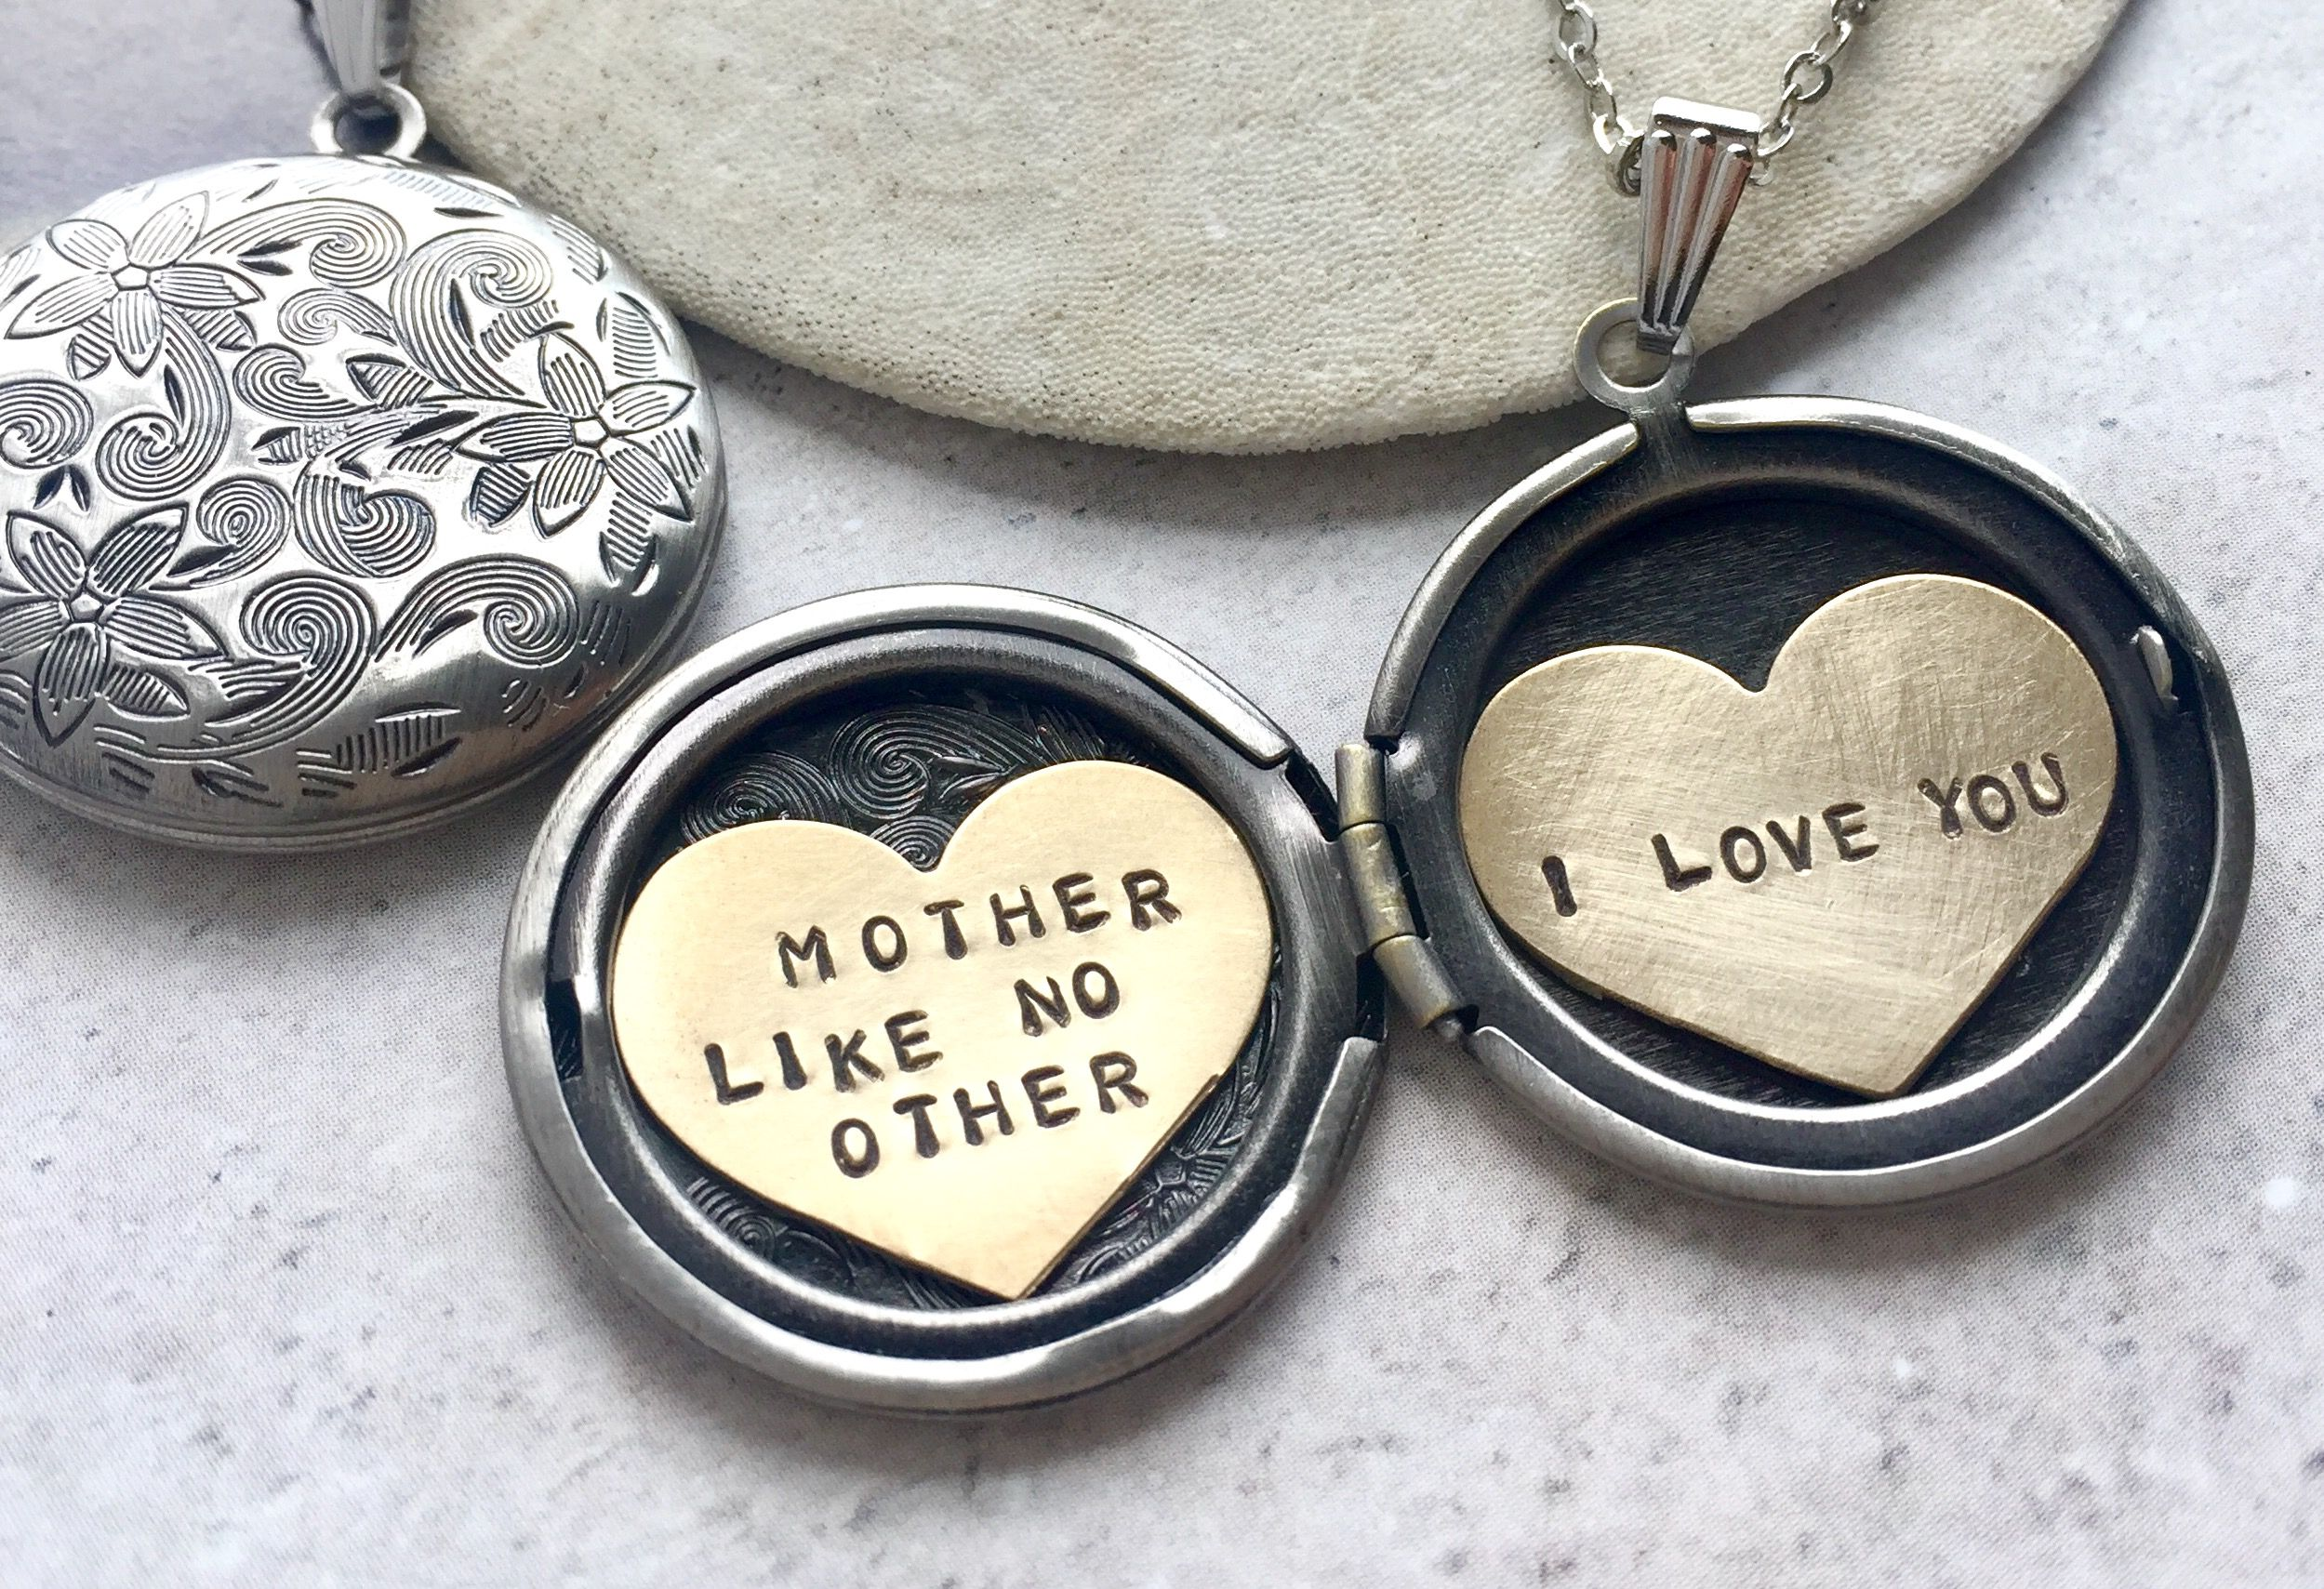 and to hand by order made from date locket a necklace initials custommade moon anniversary sora soradesigns heart engraved buy lockets designs ann